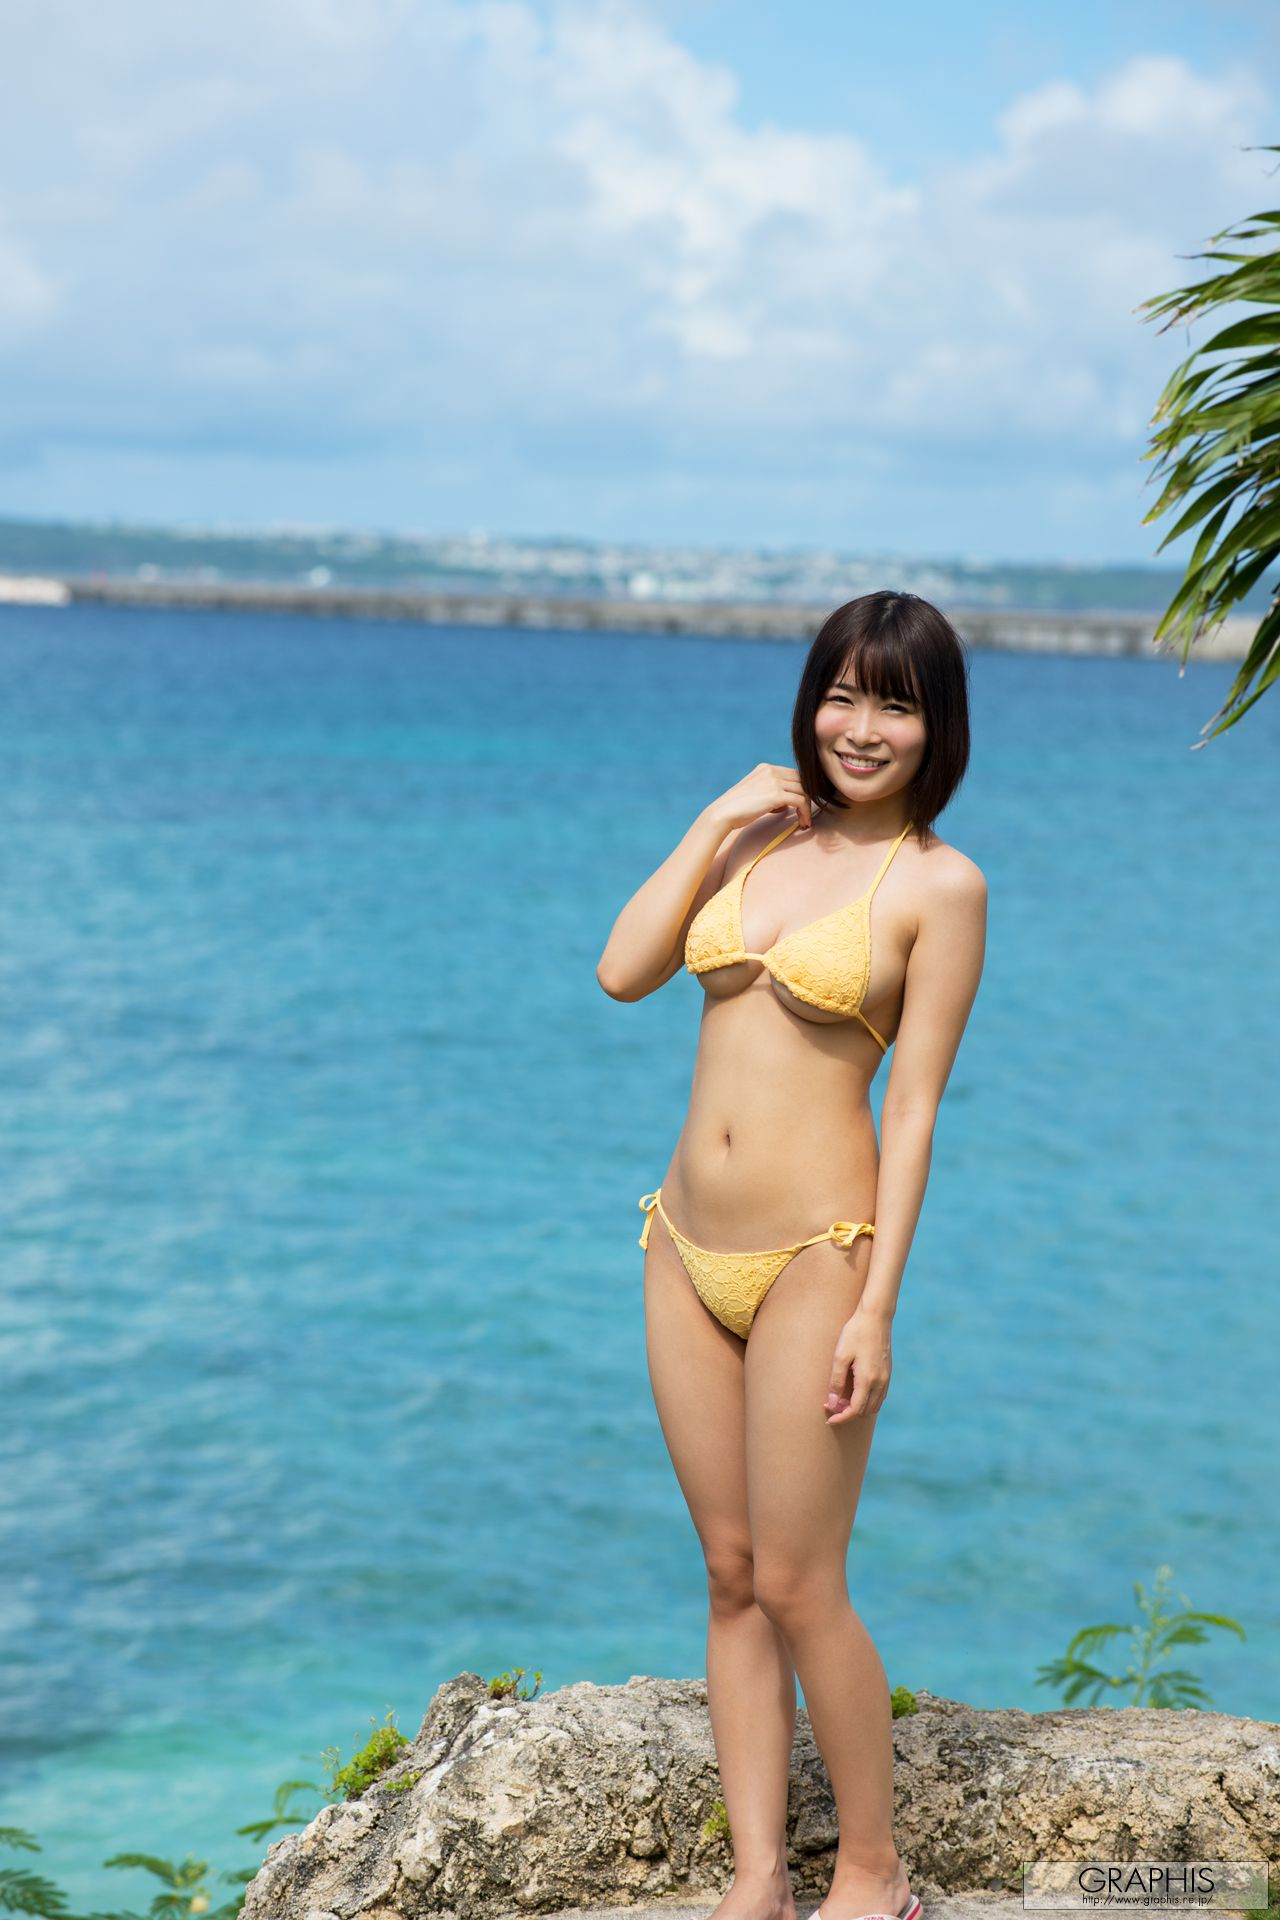 [Graphis] NO.444 河合あすな - Godly beautiful breast